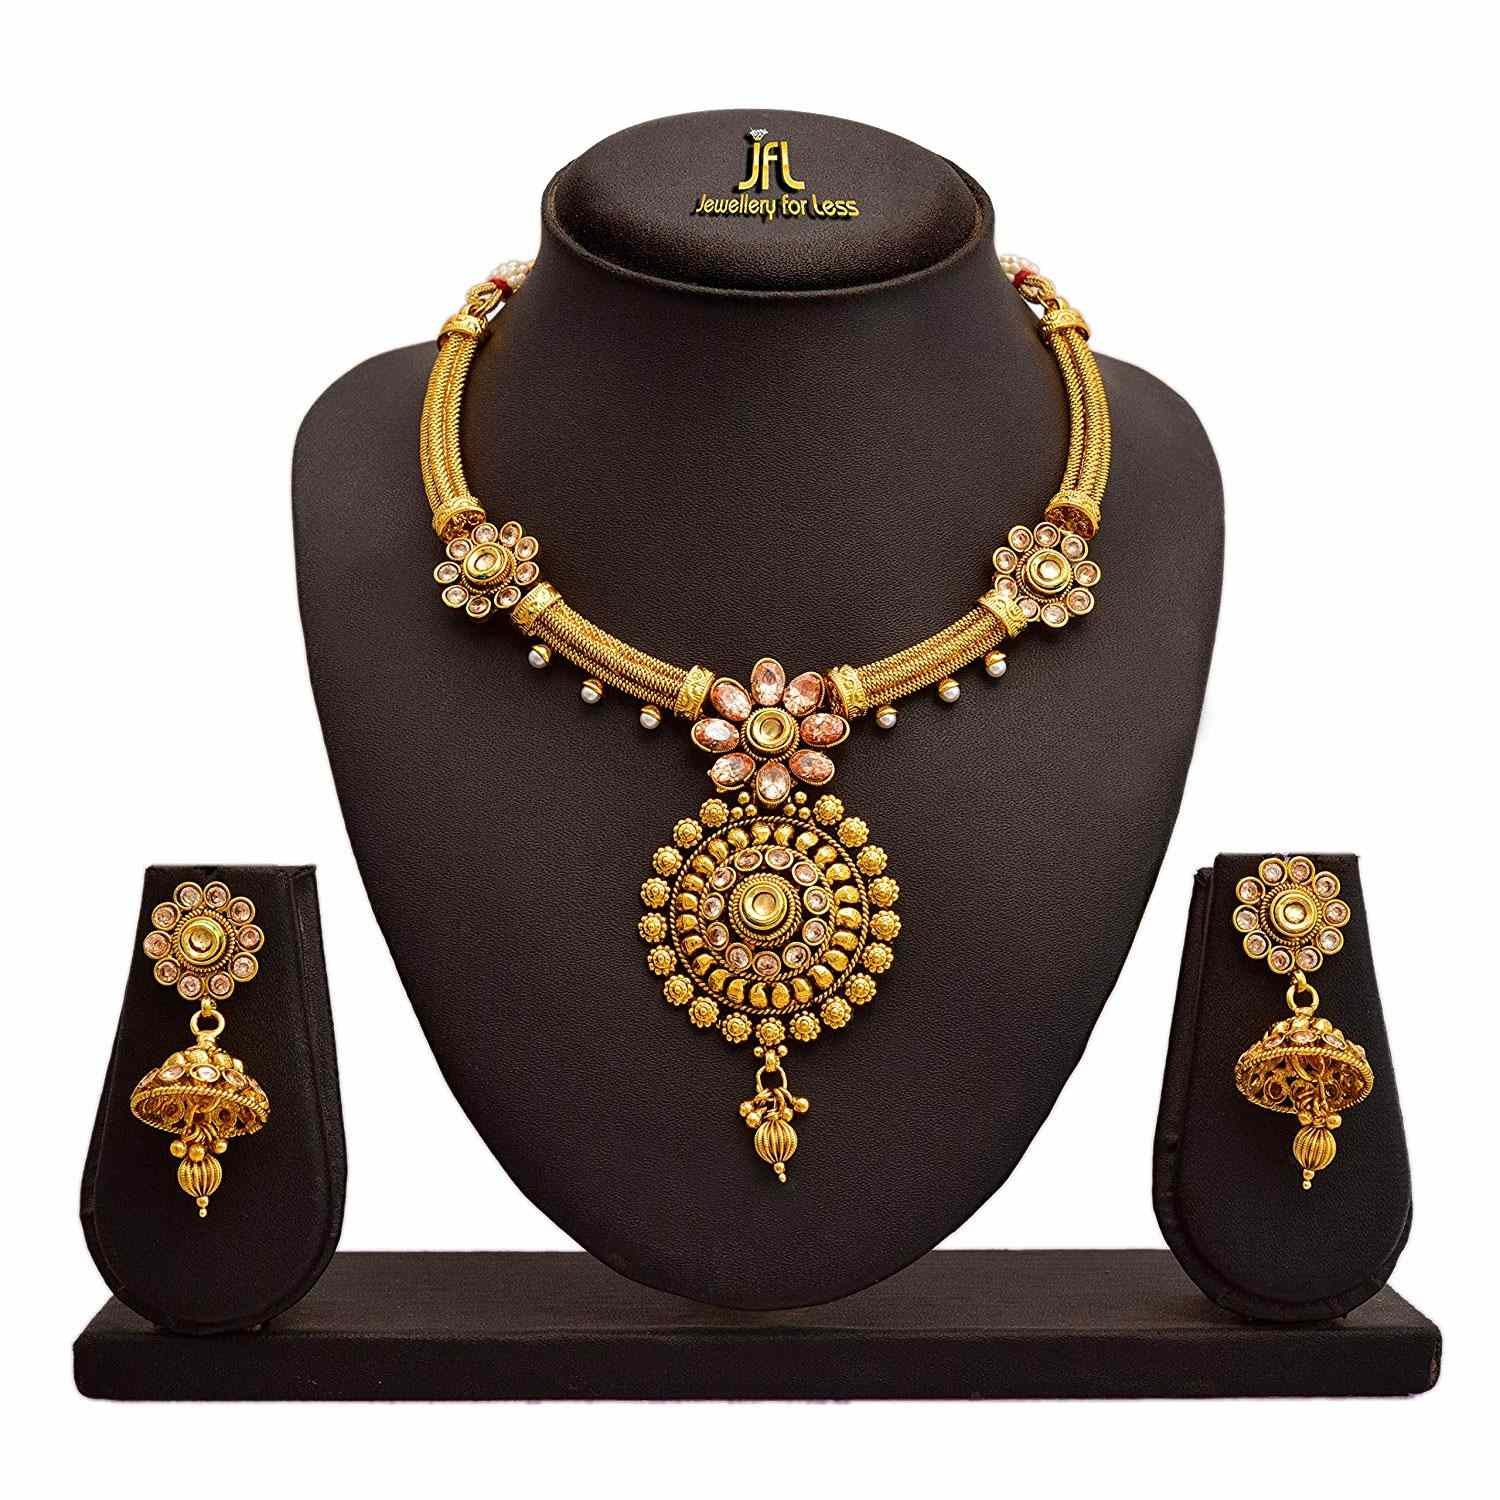 JFL - Traditional Ethnic One Gram Gold Plated LCD Champagne American Cubic Zircon Diamond Real Kundan Necklace Set for Girls and Women.